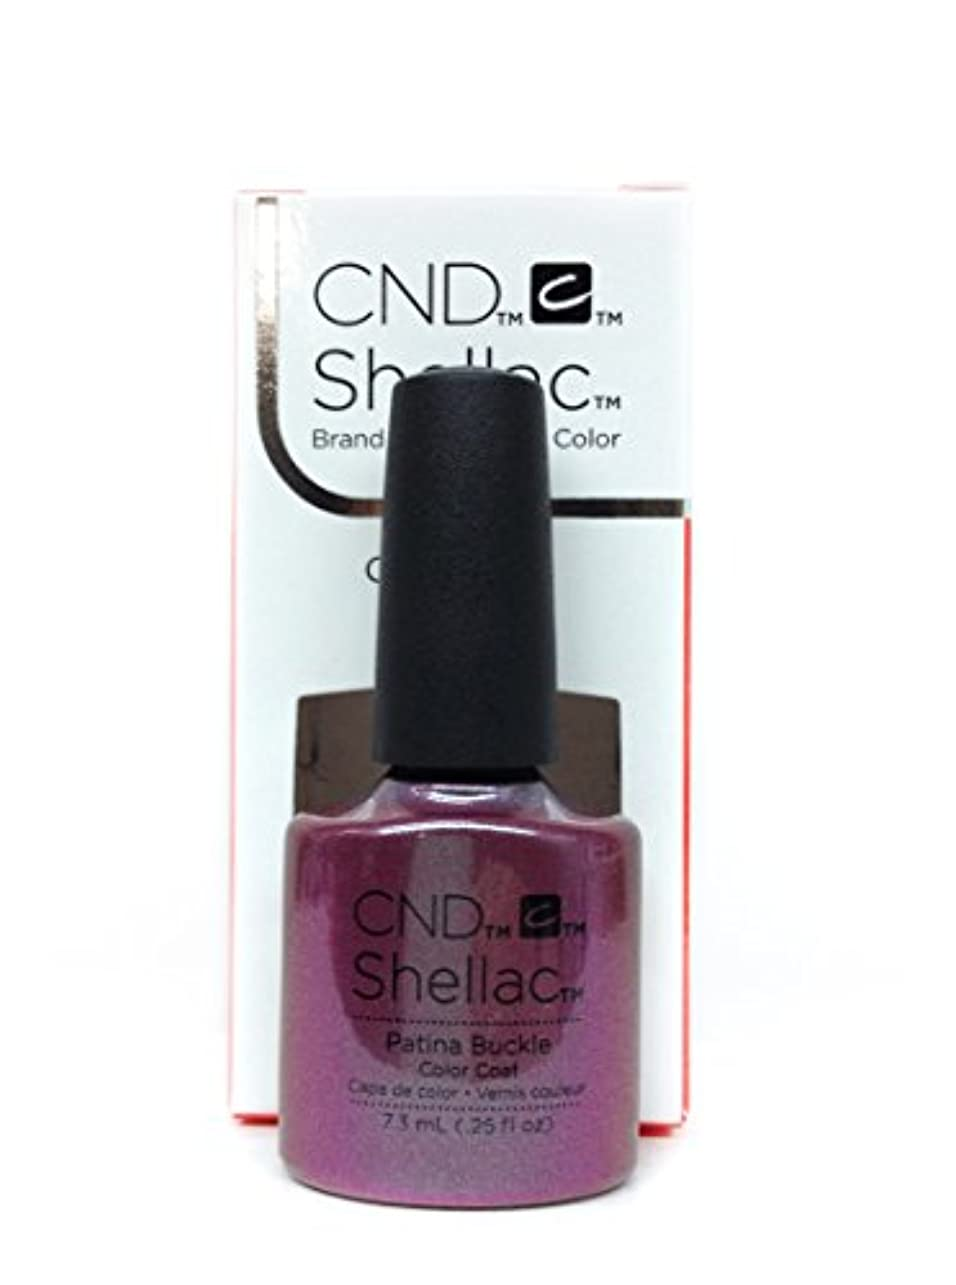 遠いくしゃくしゃ橋脚CND Shellac Gel Polish - Patina Buckle - 0.25oz / 7.3ml